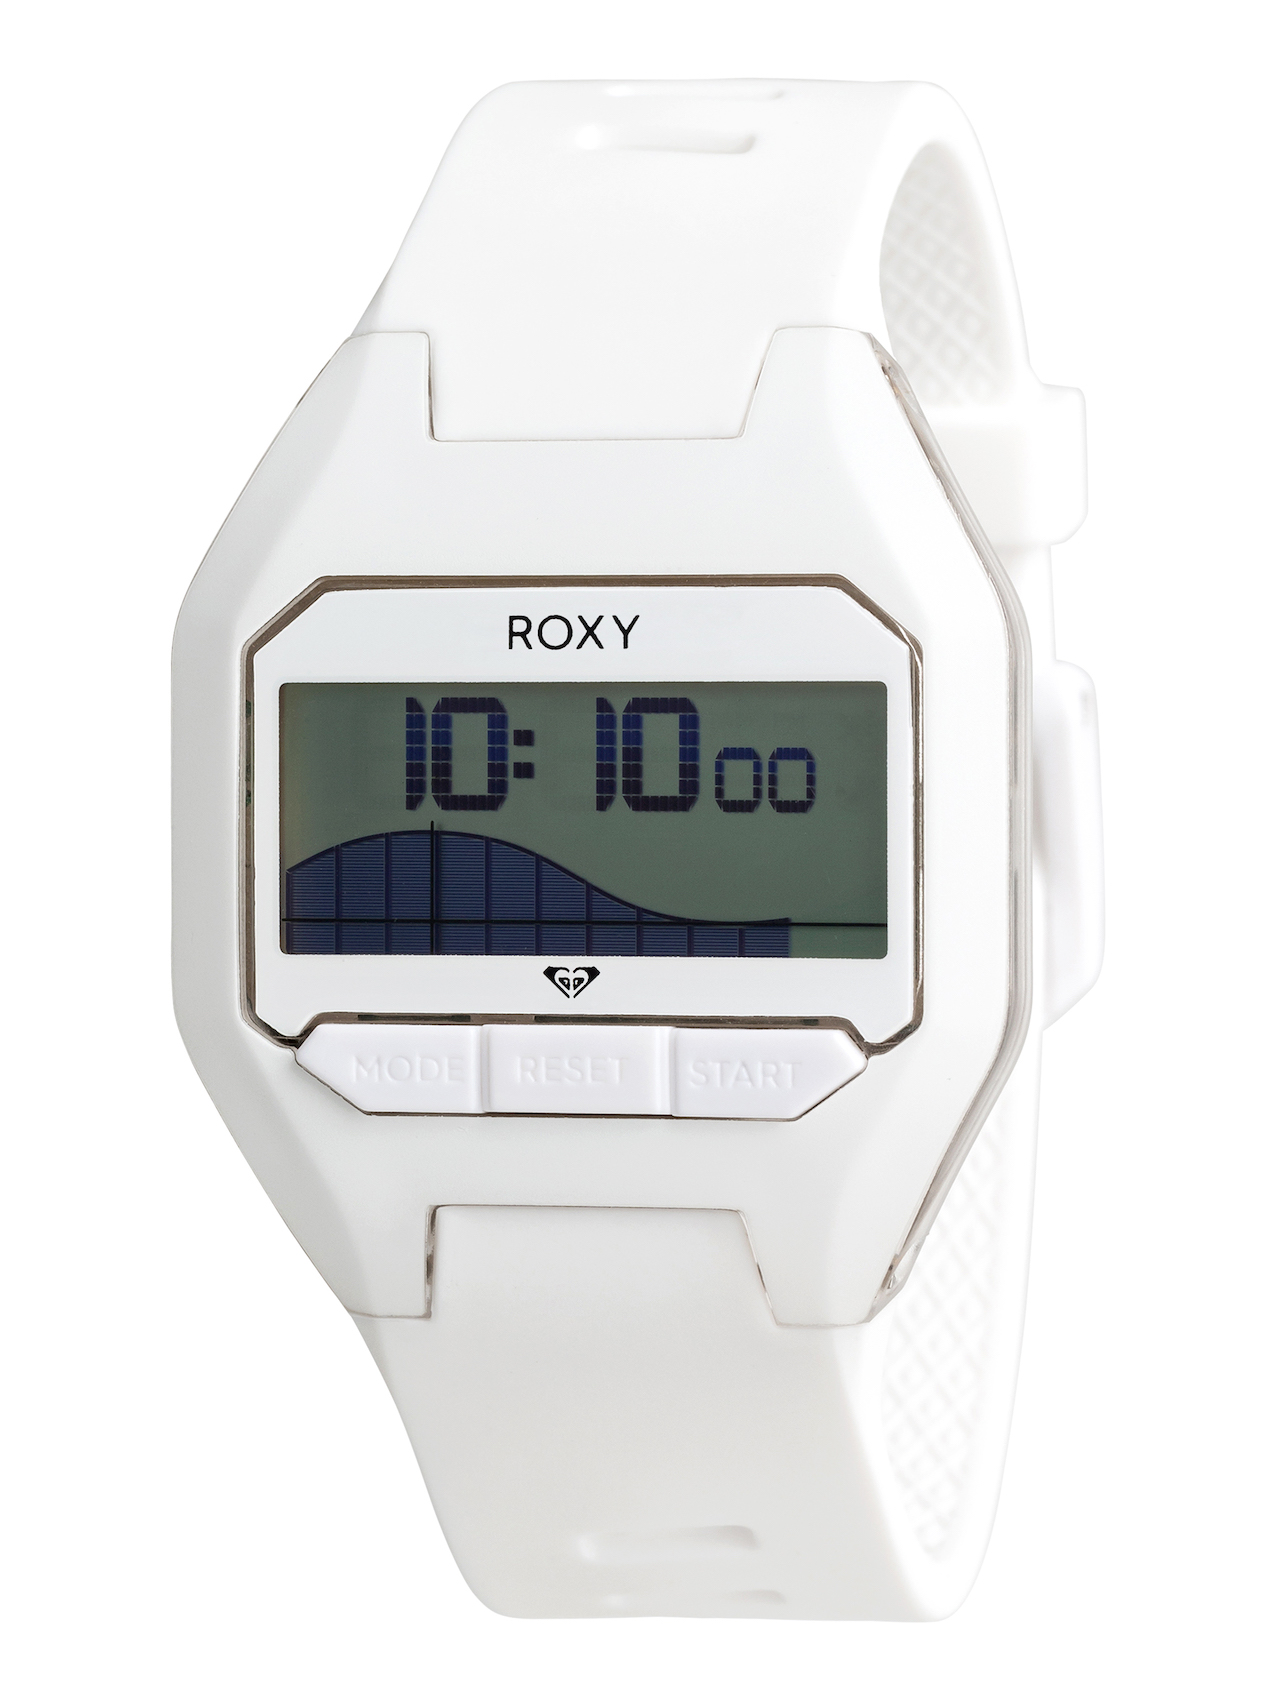 Quiksilver & Roxy SS20 Watches